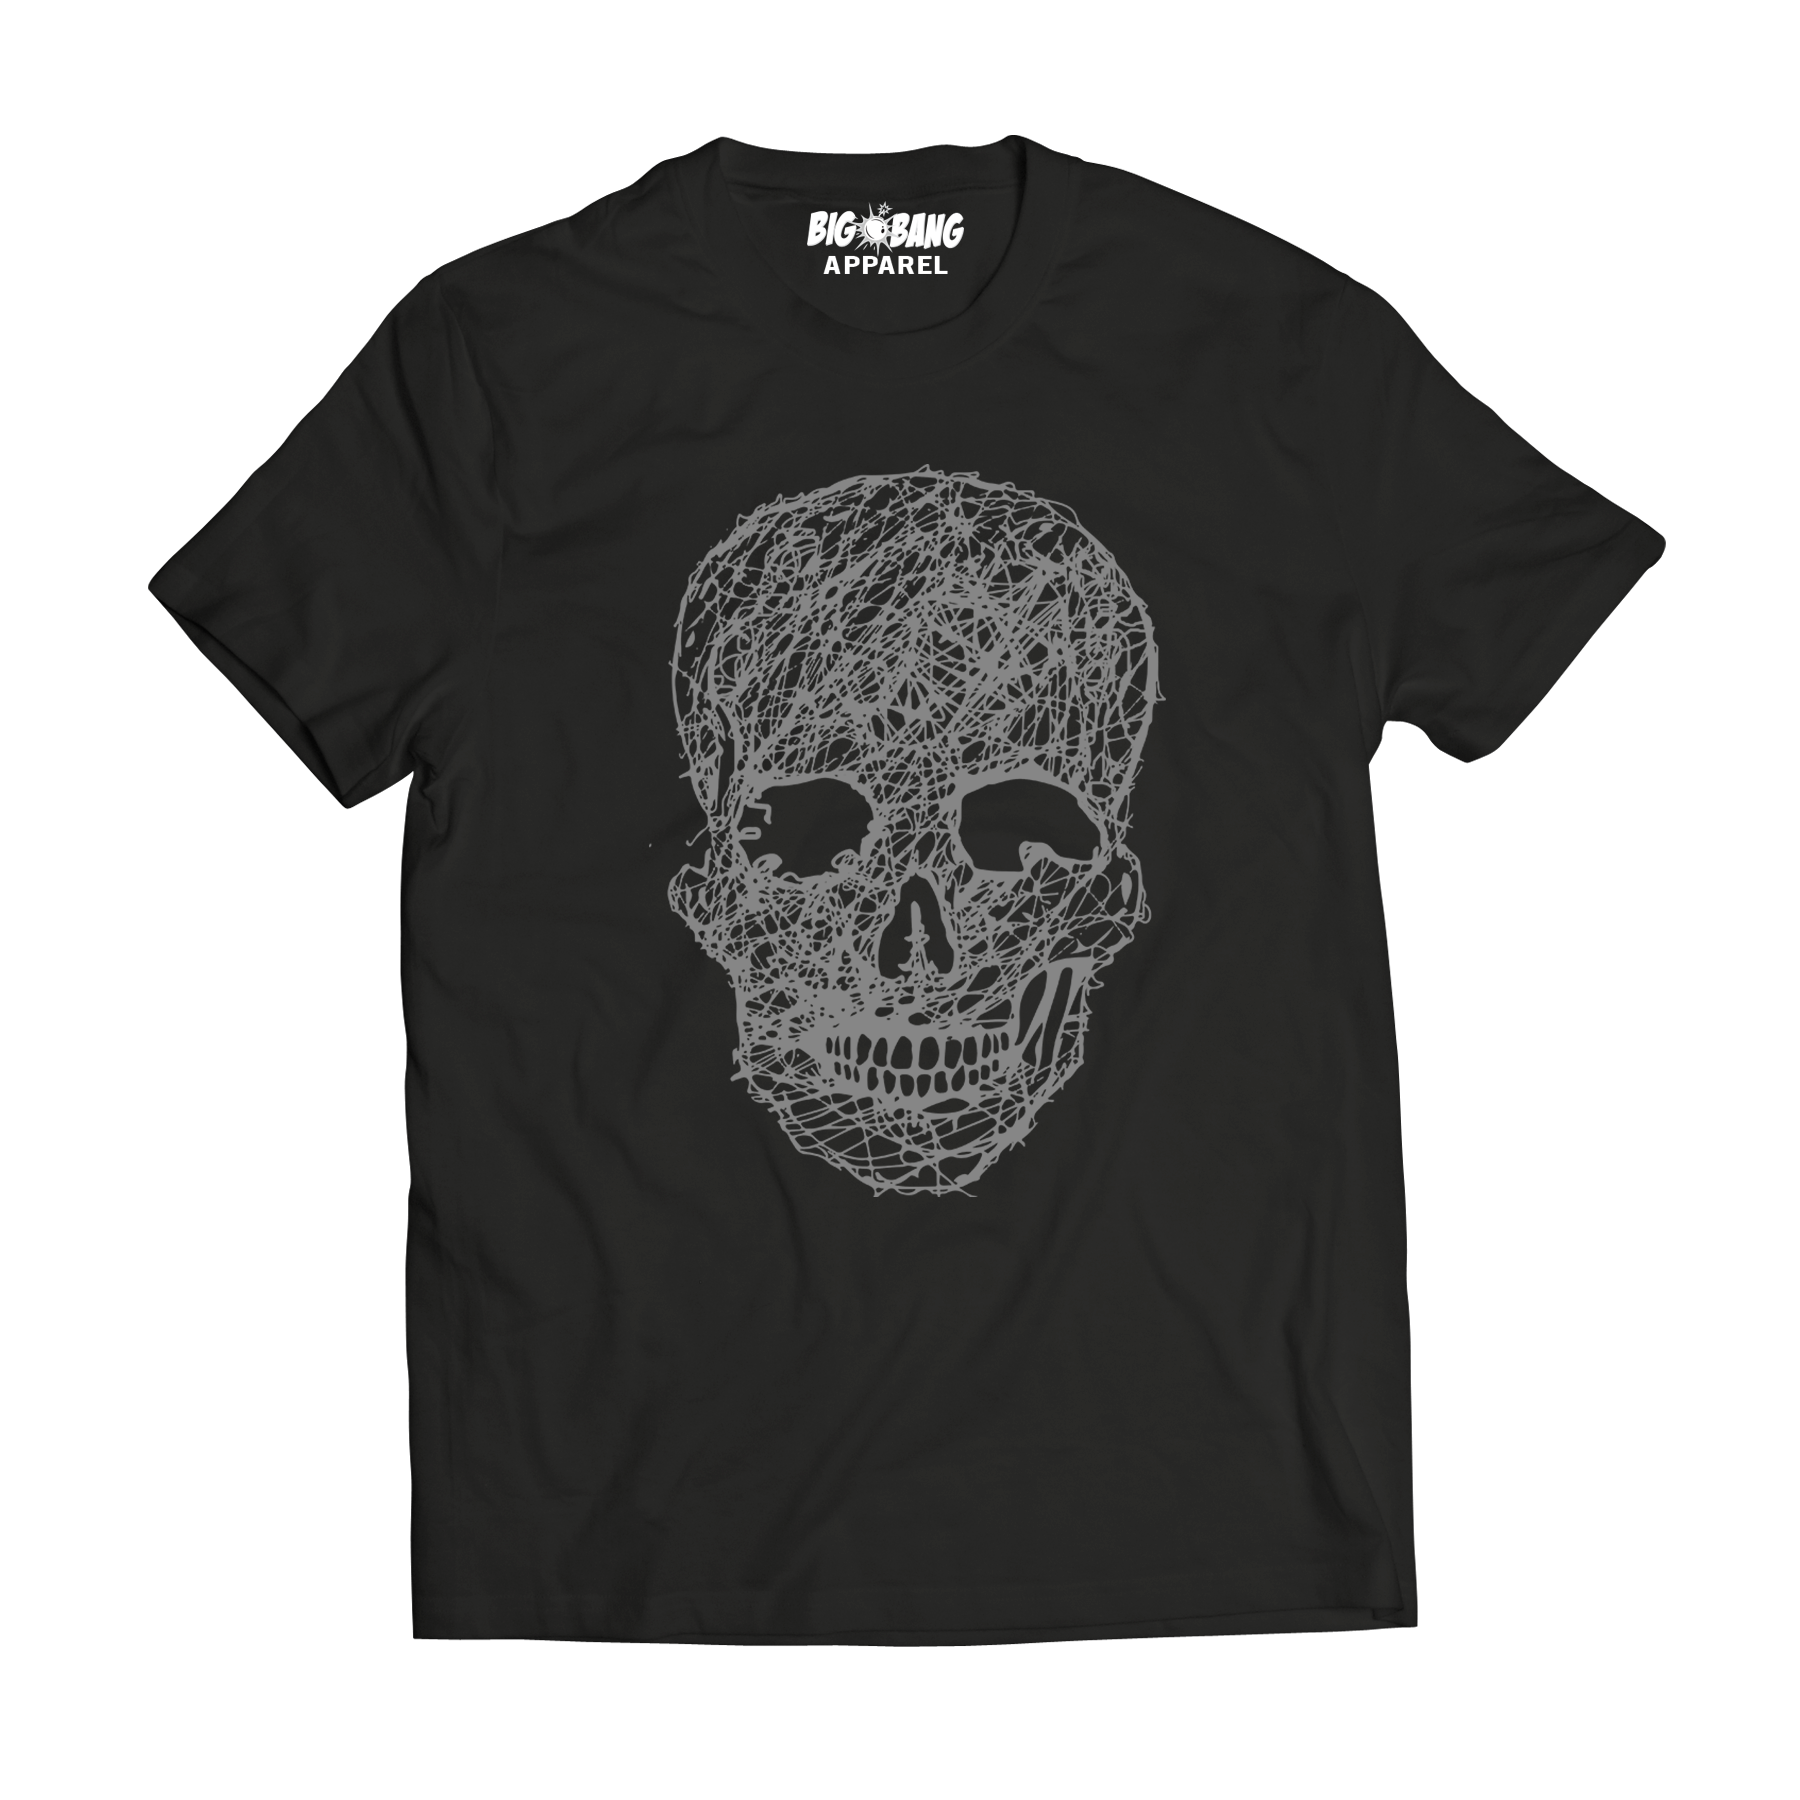 Big bang apparel skull lines t shirt big bang screen for Screen print on t shirts